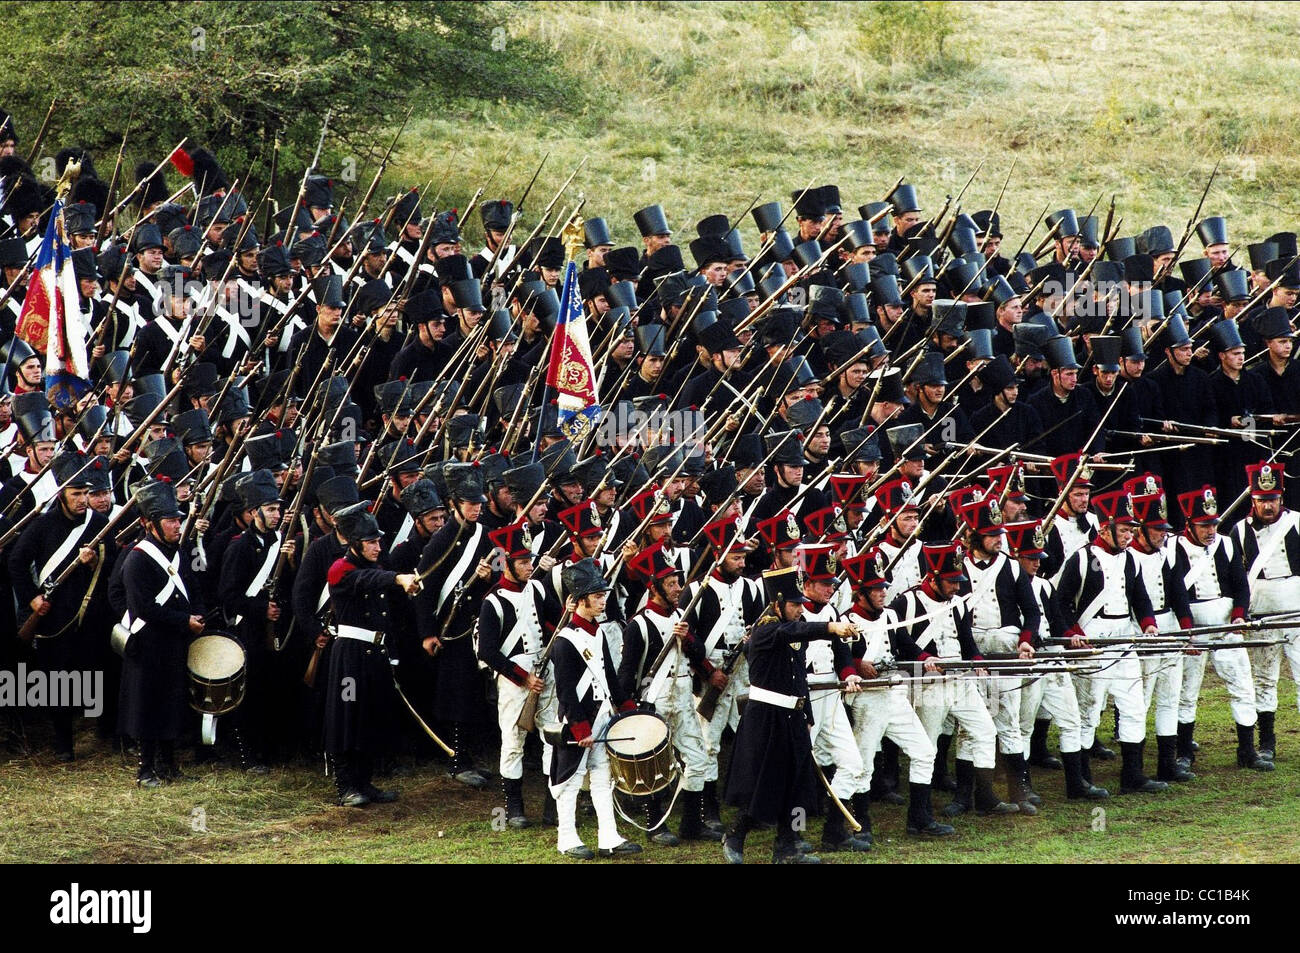 BATTLE SCENE THE BATTLE OF AUSTERLITZ (1960) - Stock Image